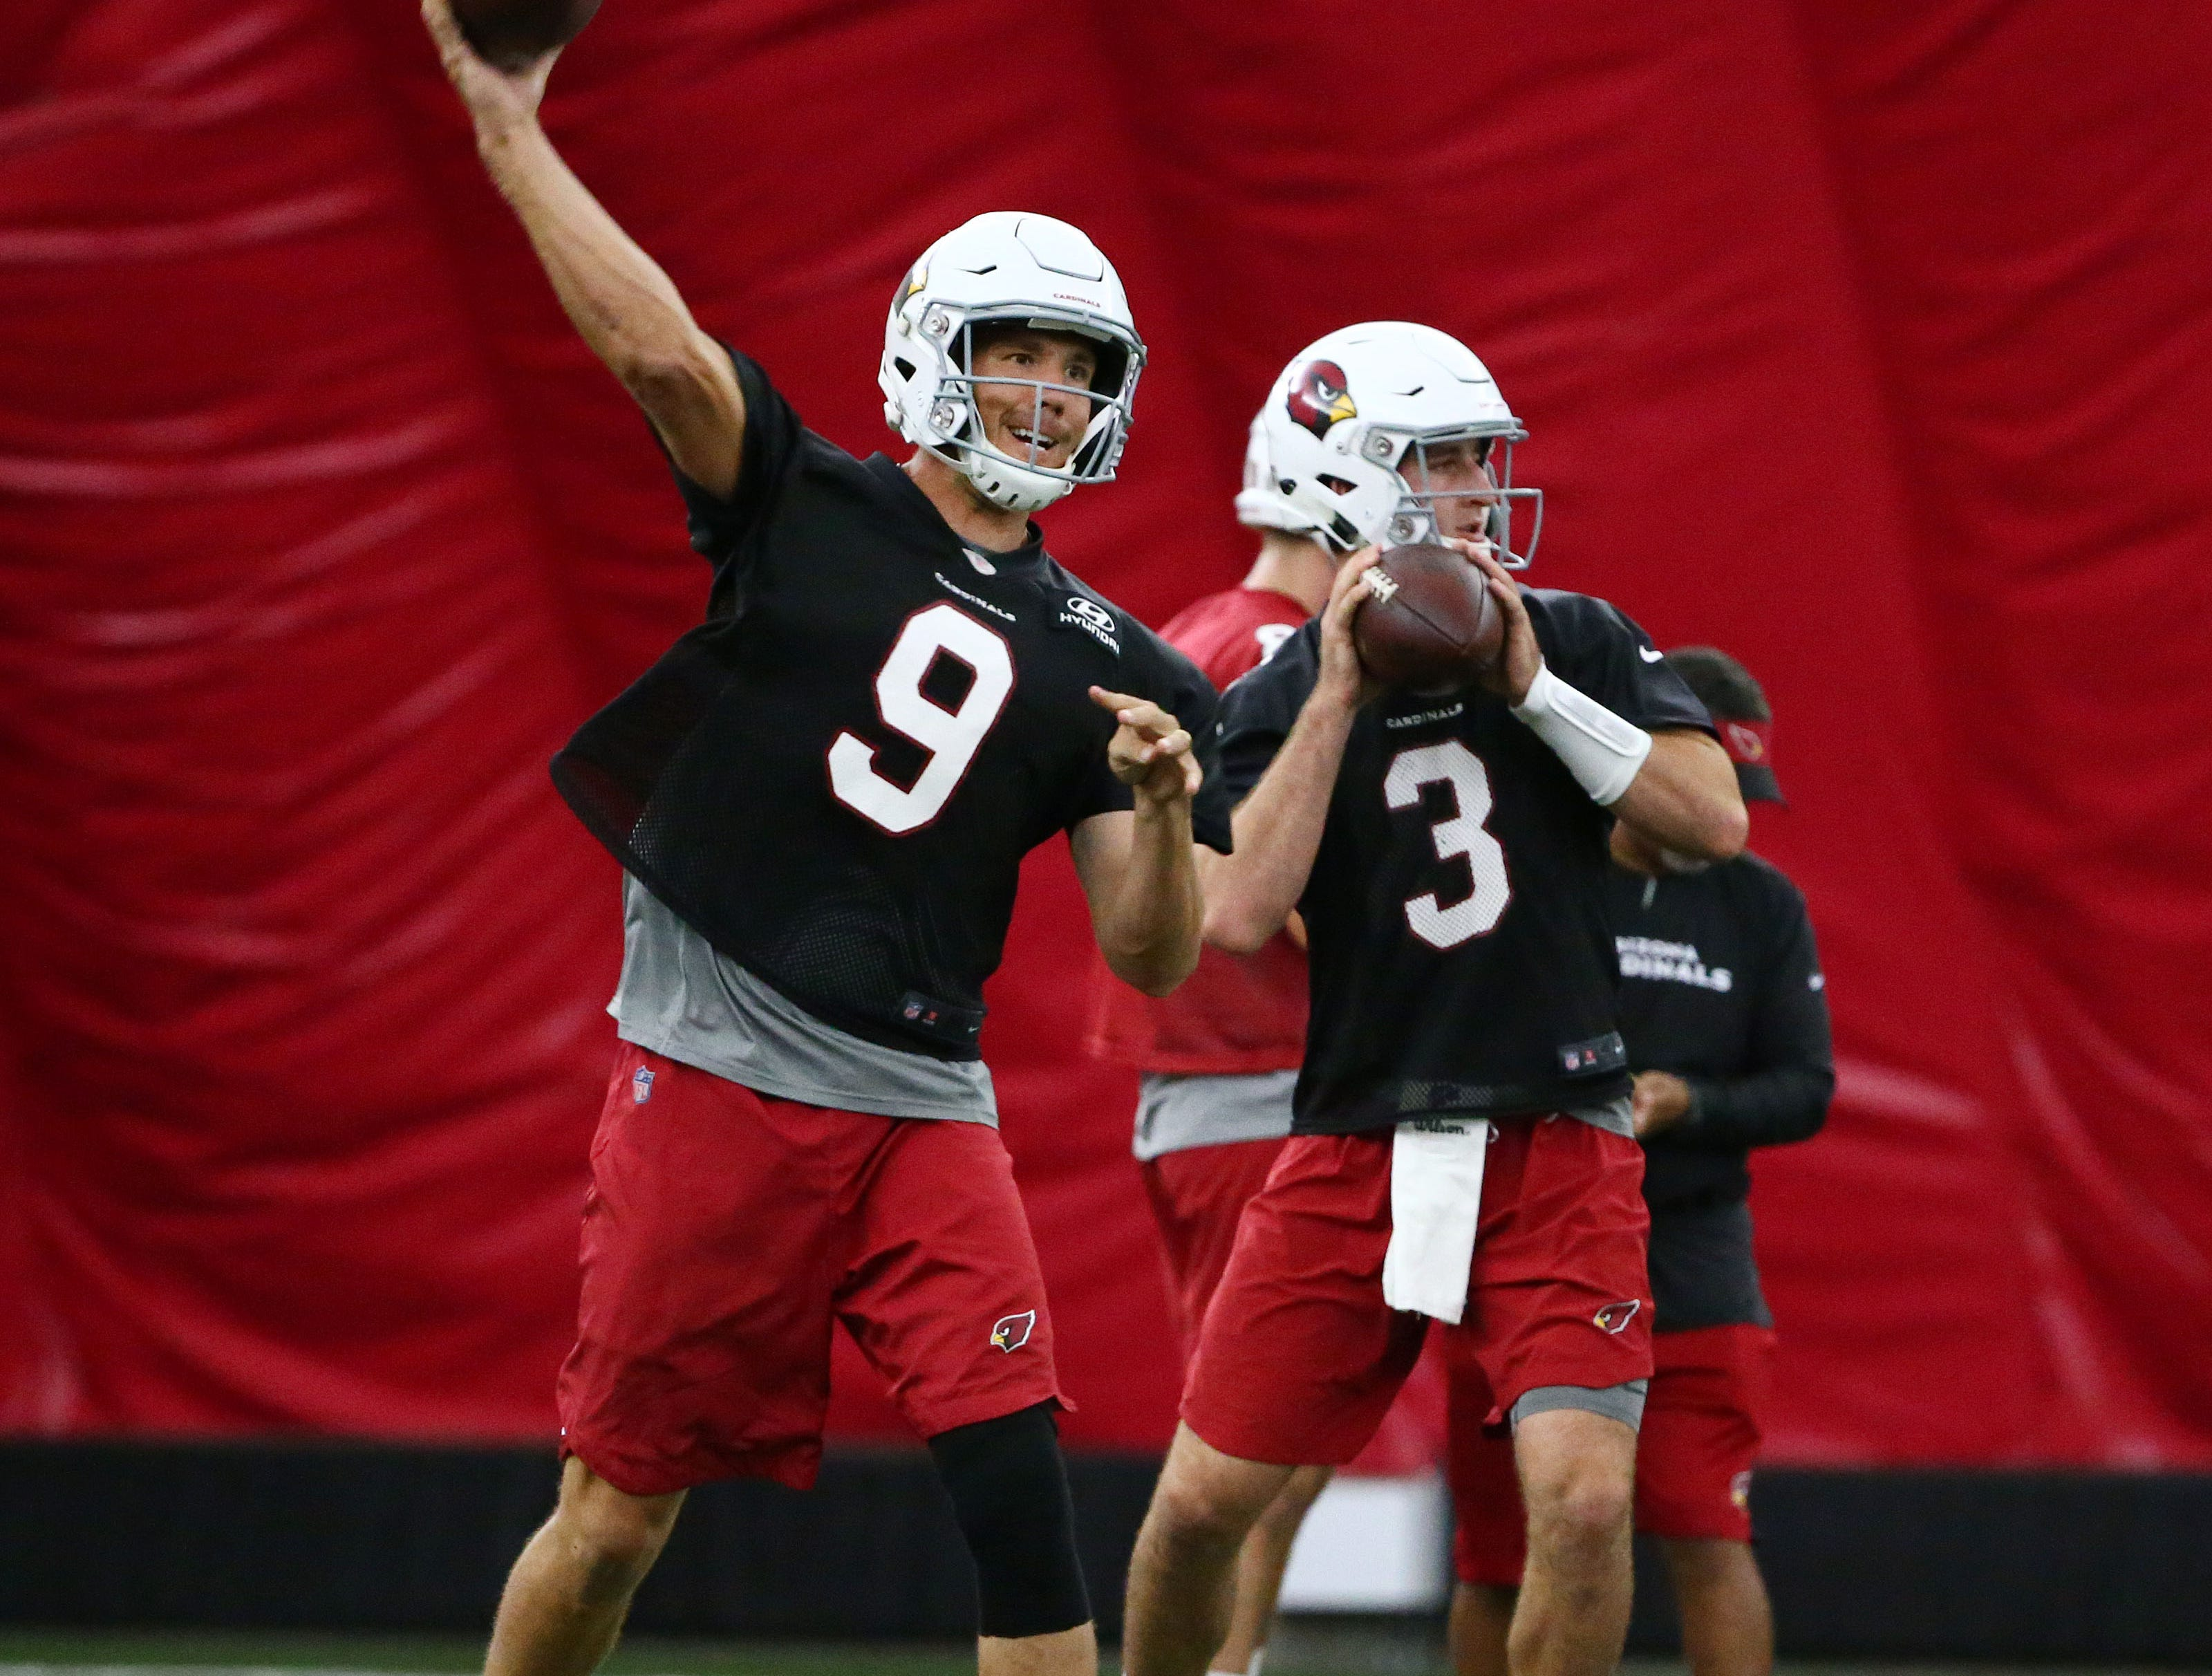 Arizona Cardinals quarterbacks Sam Bradford and Josh Rosen on Sep. 19, 2018 at the Cardinals Training Facility in Tempe, Ariz.